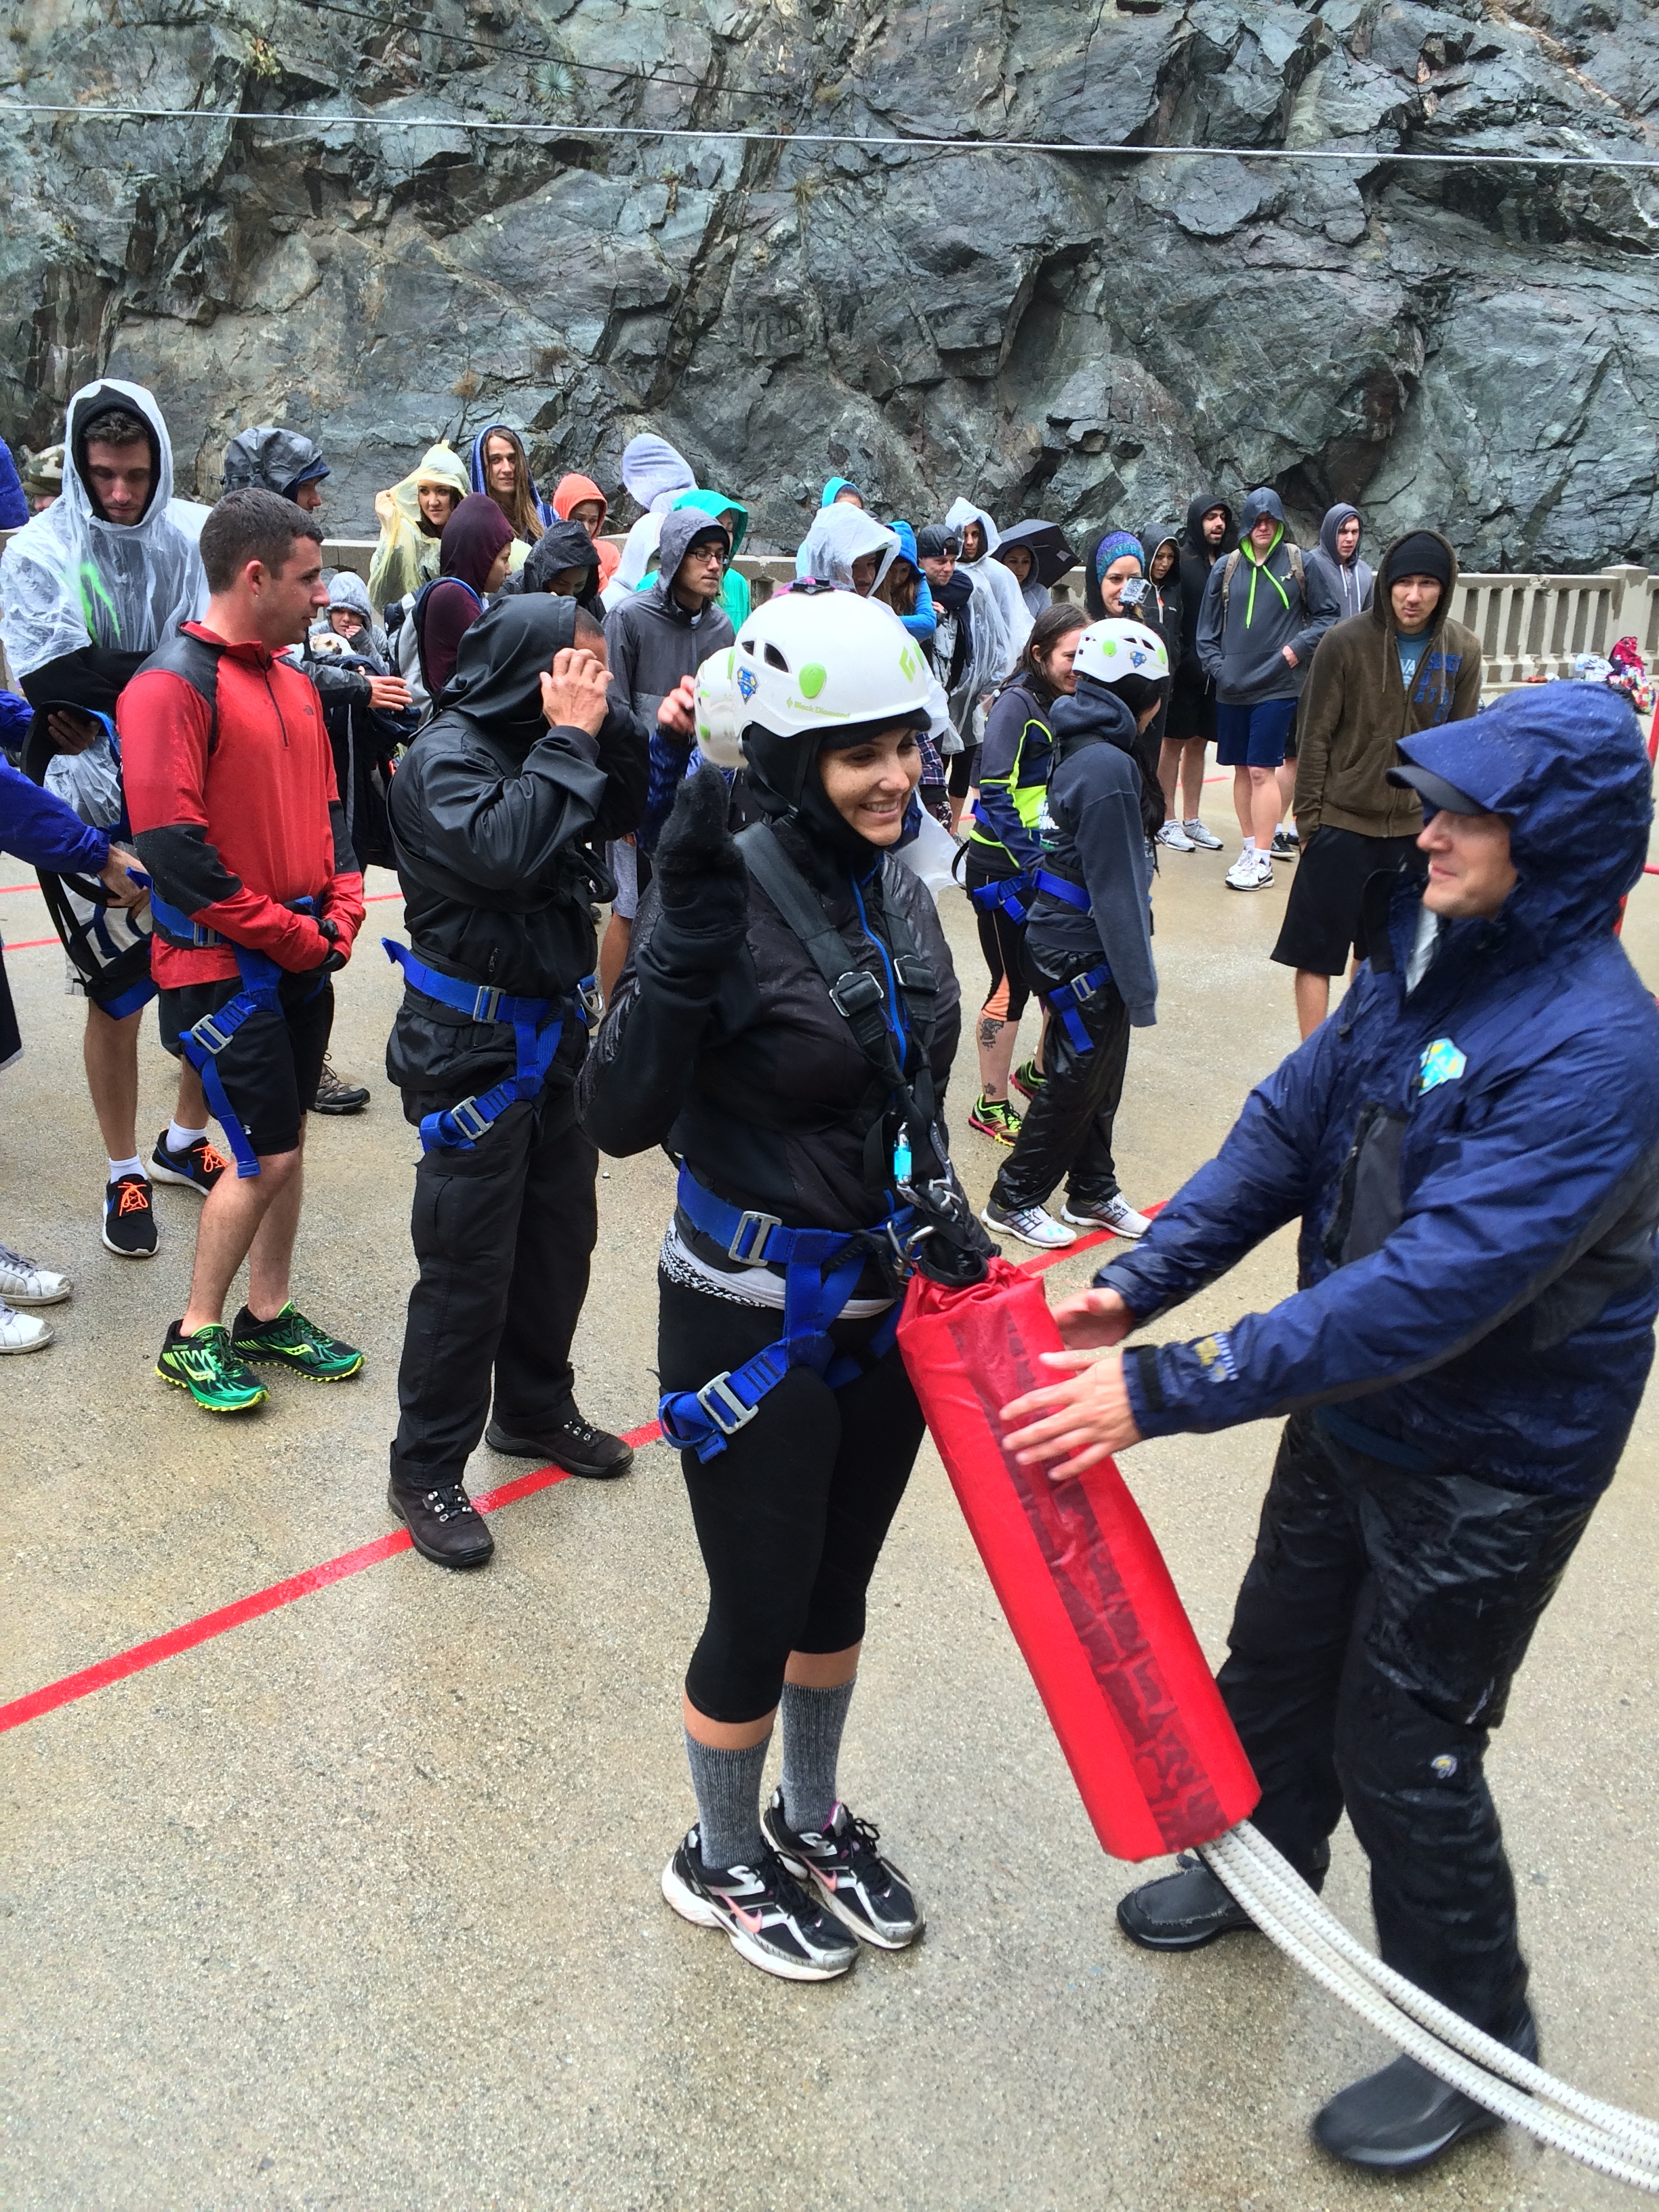 No matter the conditions, Bungee America keeps its patrons safe and well-organized.